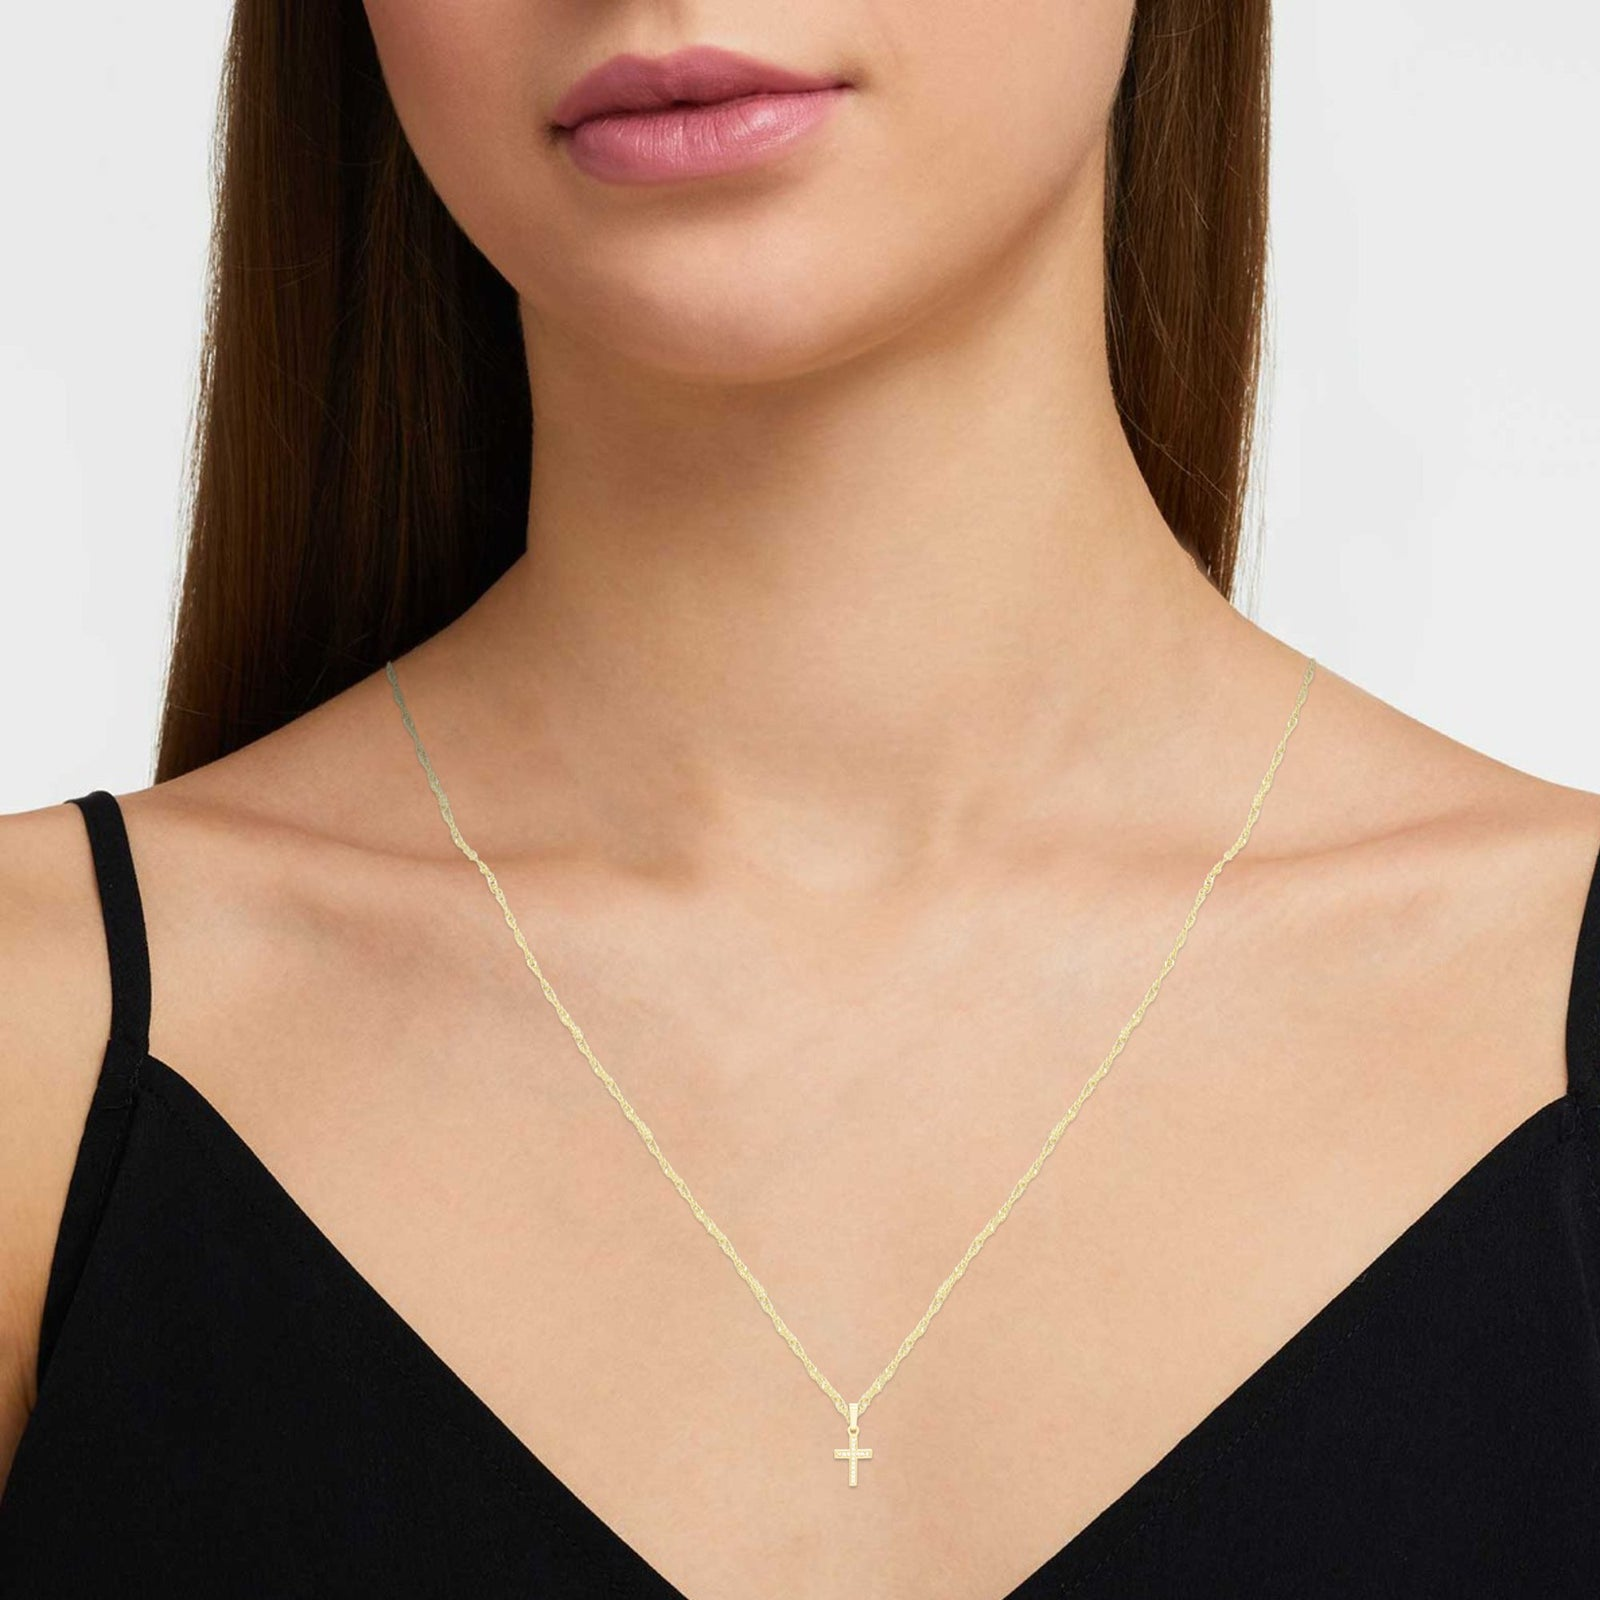 Big Stone Cross Cubic Zirconia Pendant With Necklace Set 14K Gold Filled